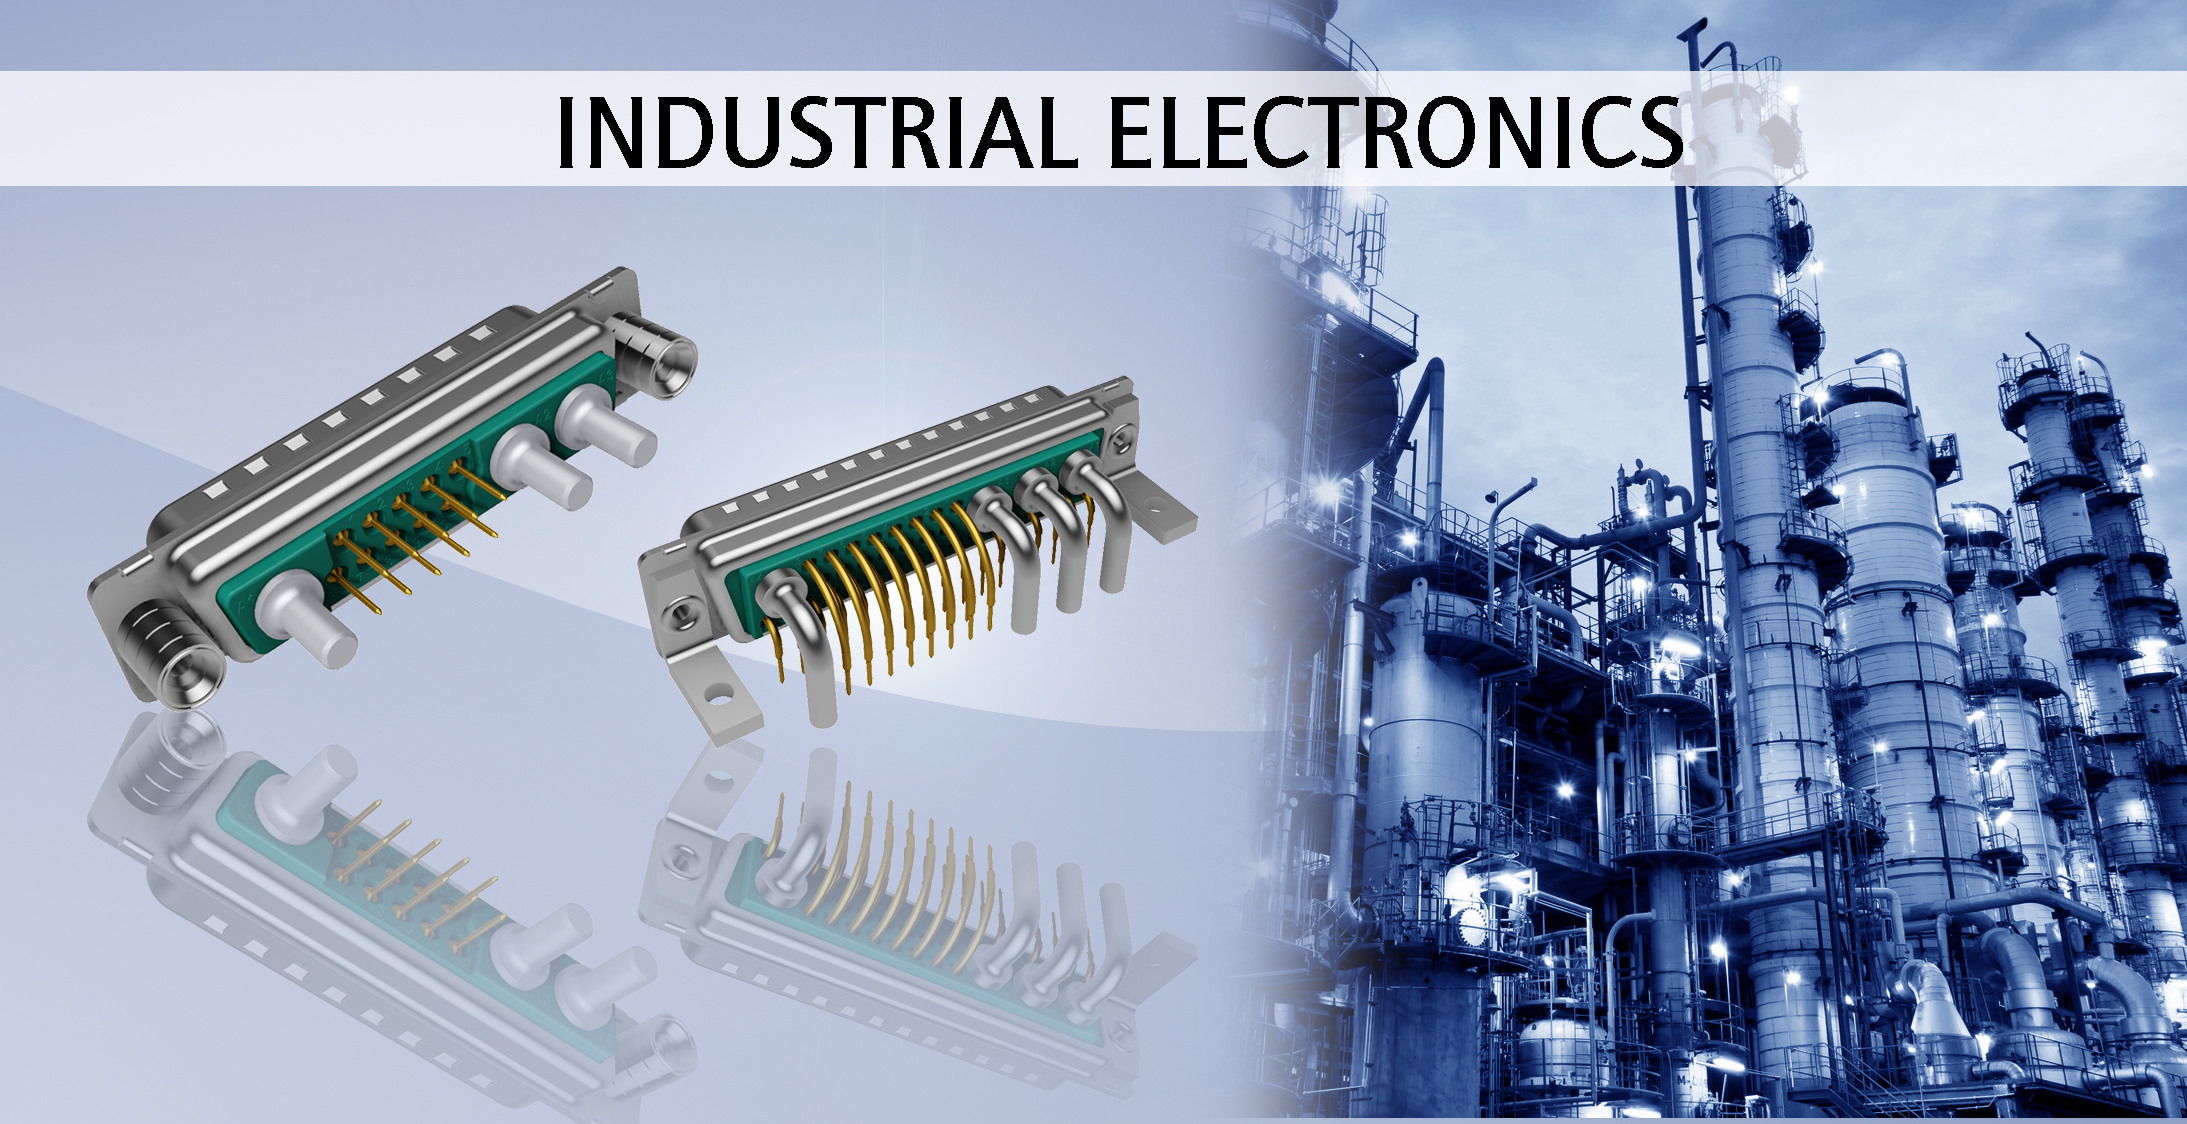 23 2 industrial electronics Case 23 2 industrial electronics inc pageout pdf case 23 2 industrial electronics inc pageout download mon, 19 mar 2018 14:38:00 gmt case 23 2 industrial pdf - since.